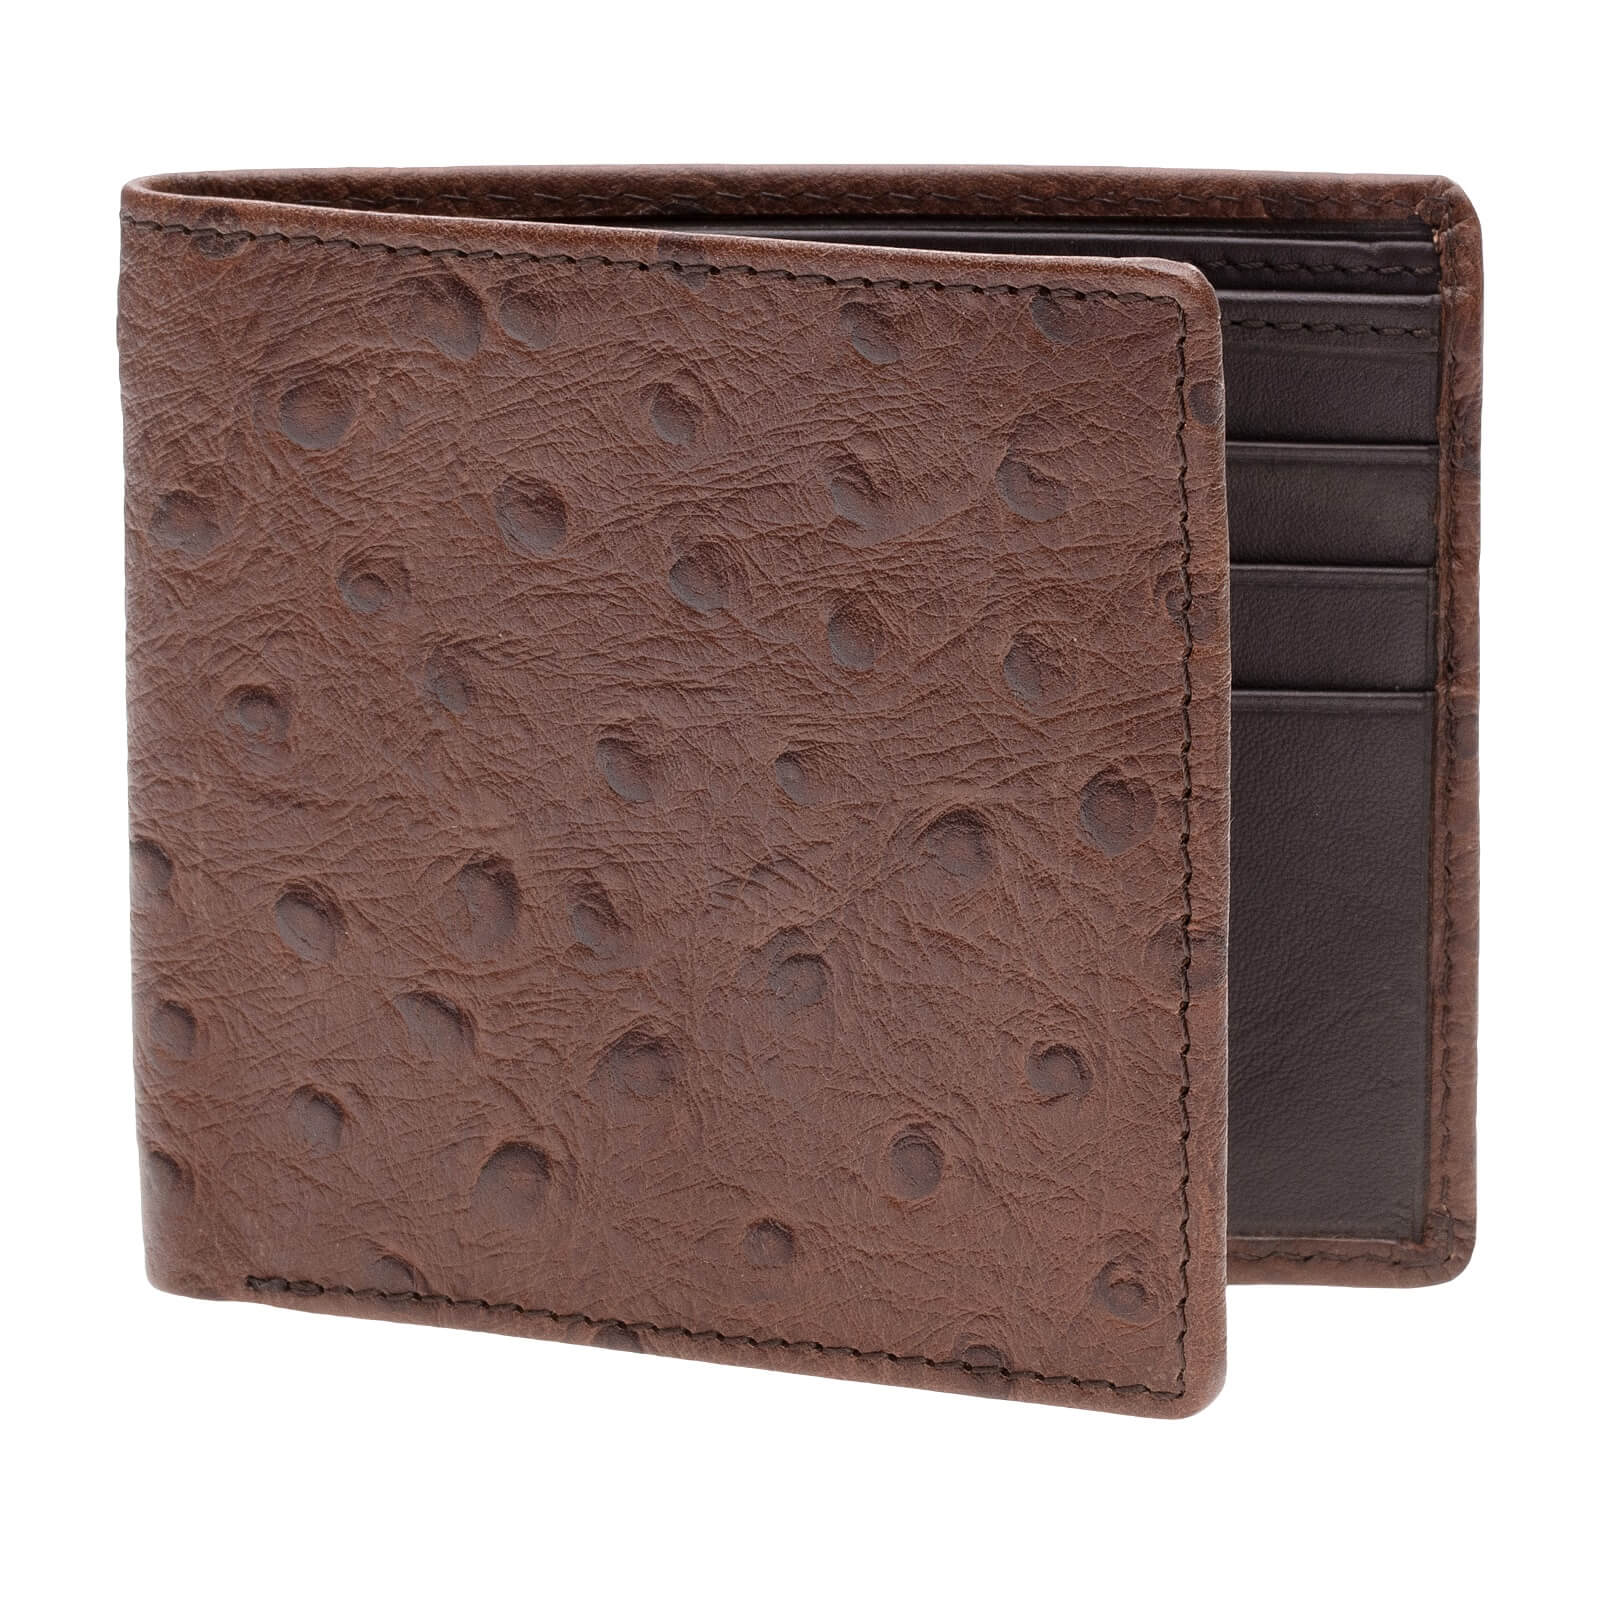 Brown Mock Ostrich Vegetable Tan Leather Wallet - Brown / Brown / One Size | Mens Fashion & Leather Goods by Roger Ximenez